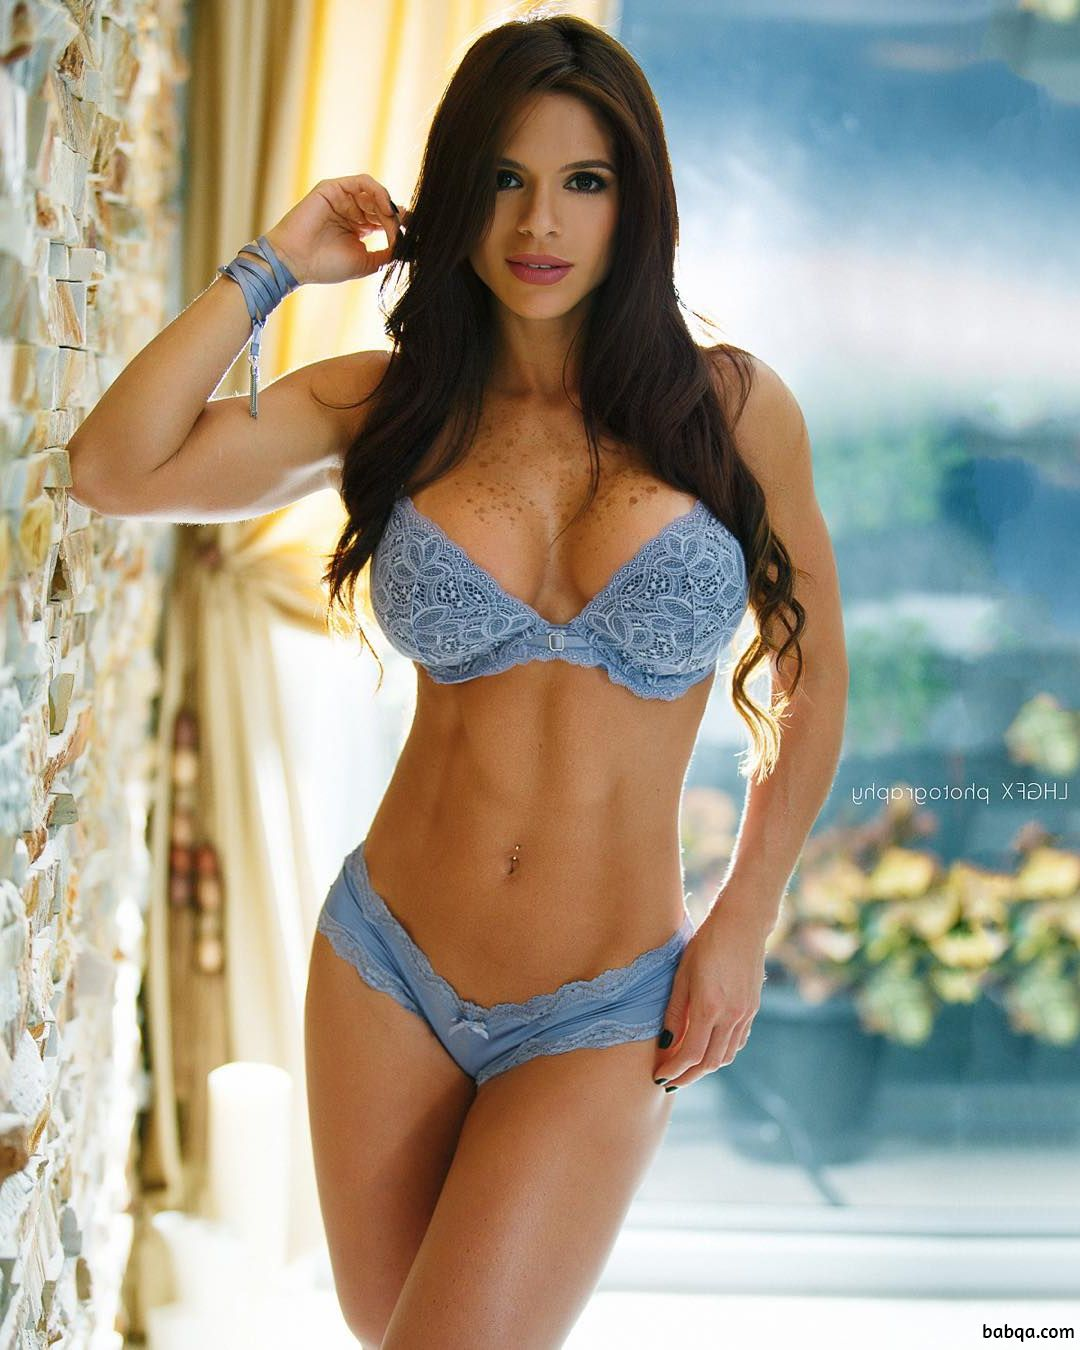 hot college girls pics repost from michelle_lewin – vegetarian fitness models